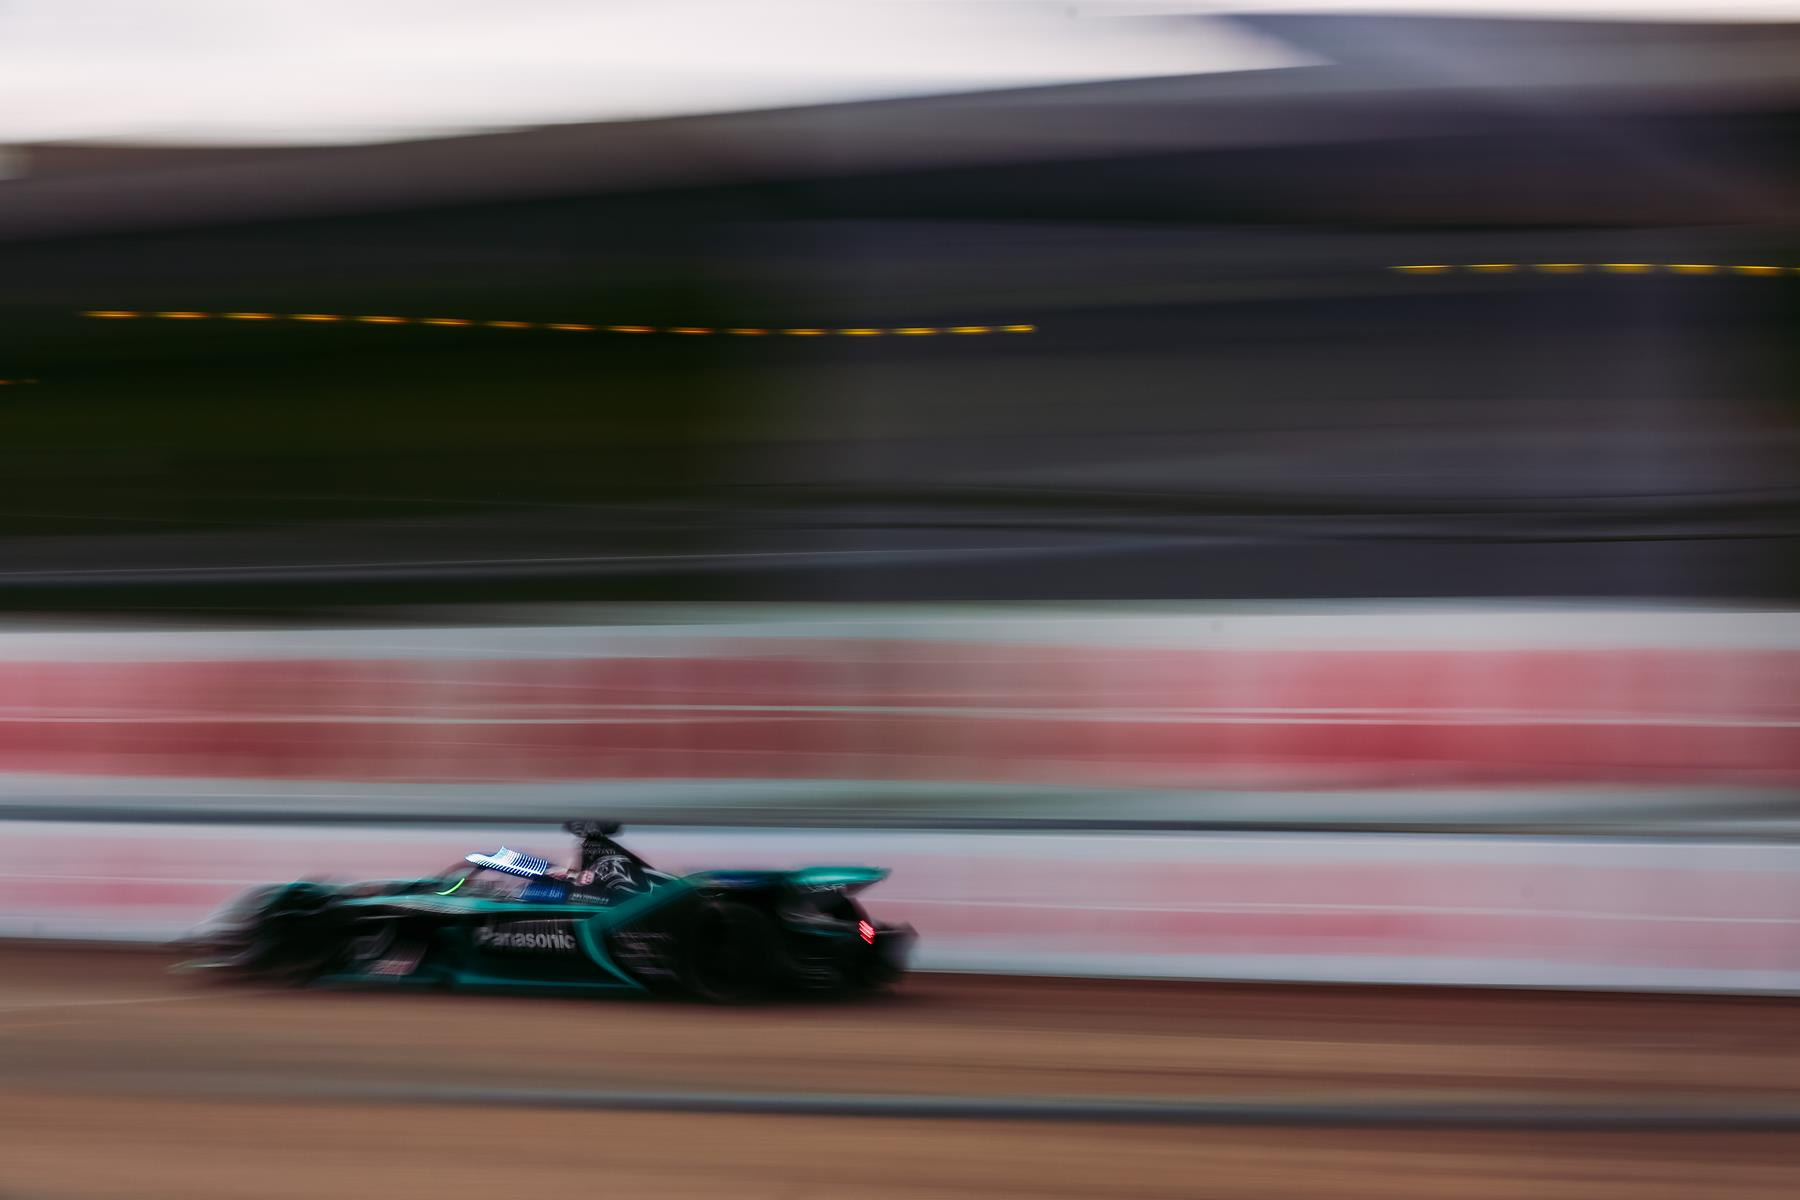 Mitch-Evans-Panasonic-Jaguar-Racing-Berlin-E-Prix-2020-Attack-Mode-activated-ABB-logo-background-blur